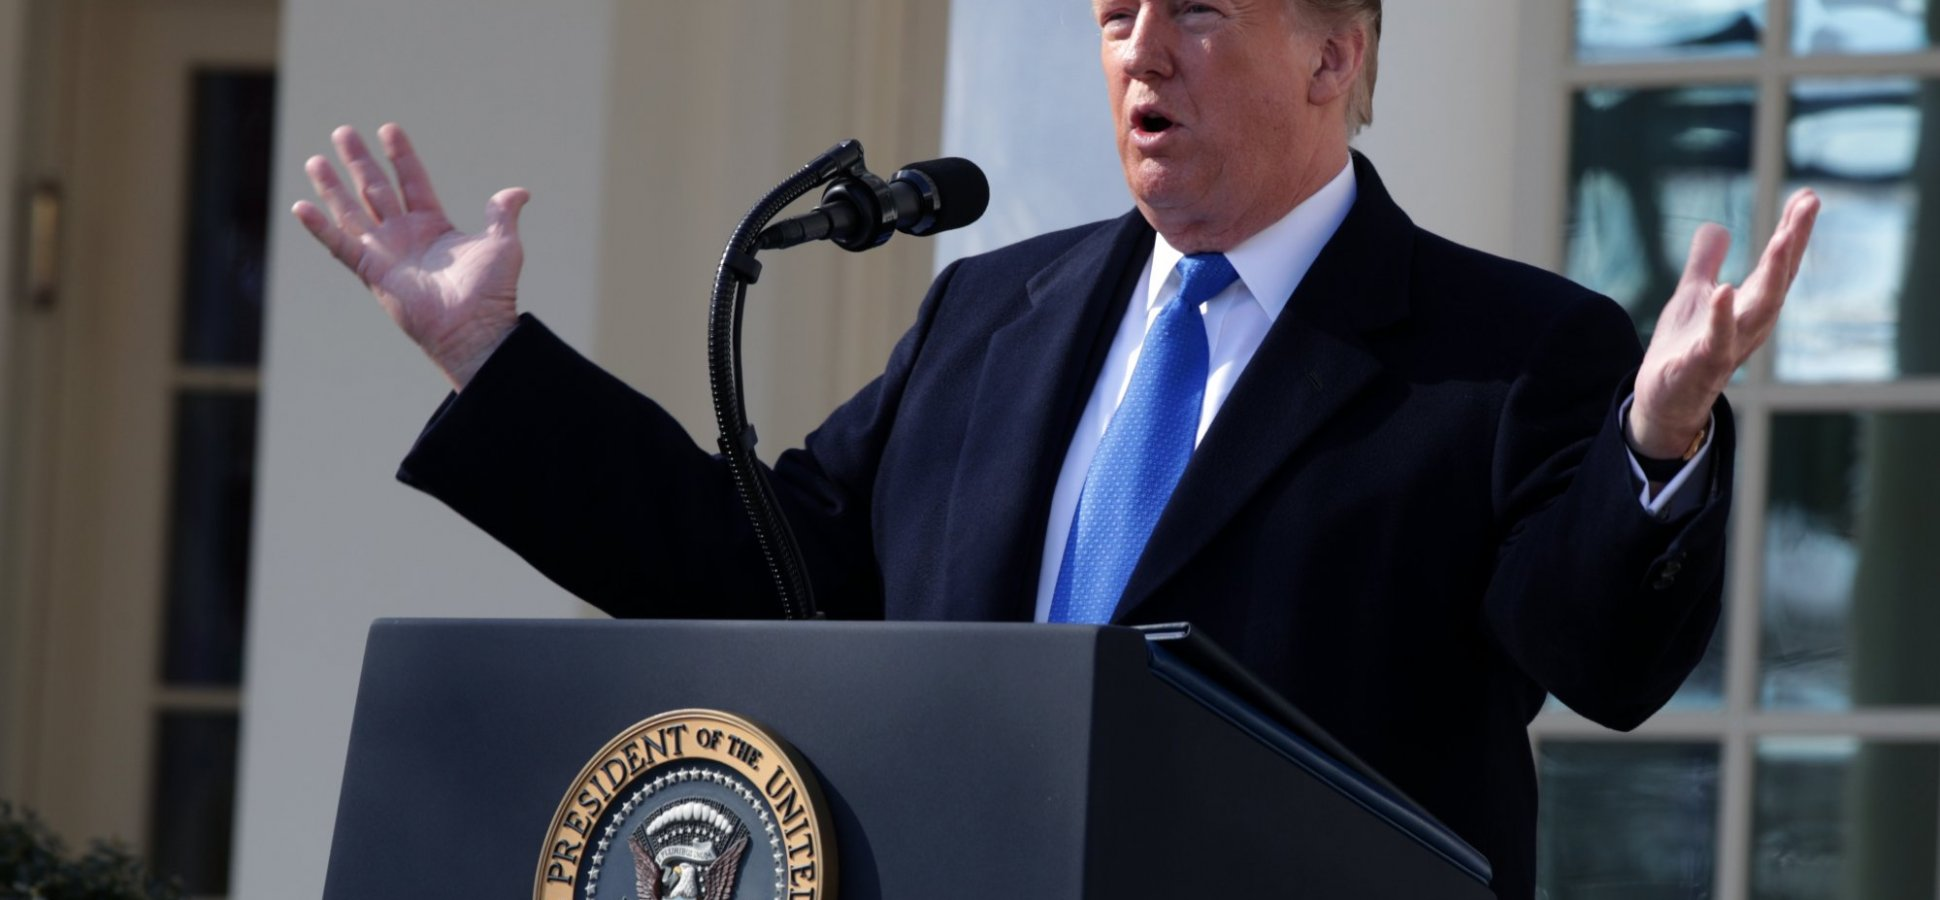 3 Major Tips on Addressing the Public Leaders Can Learn From Trump's National Emergency Backlash